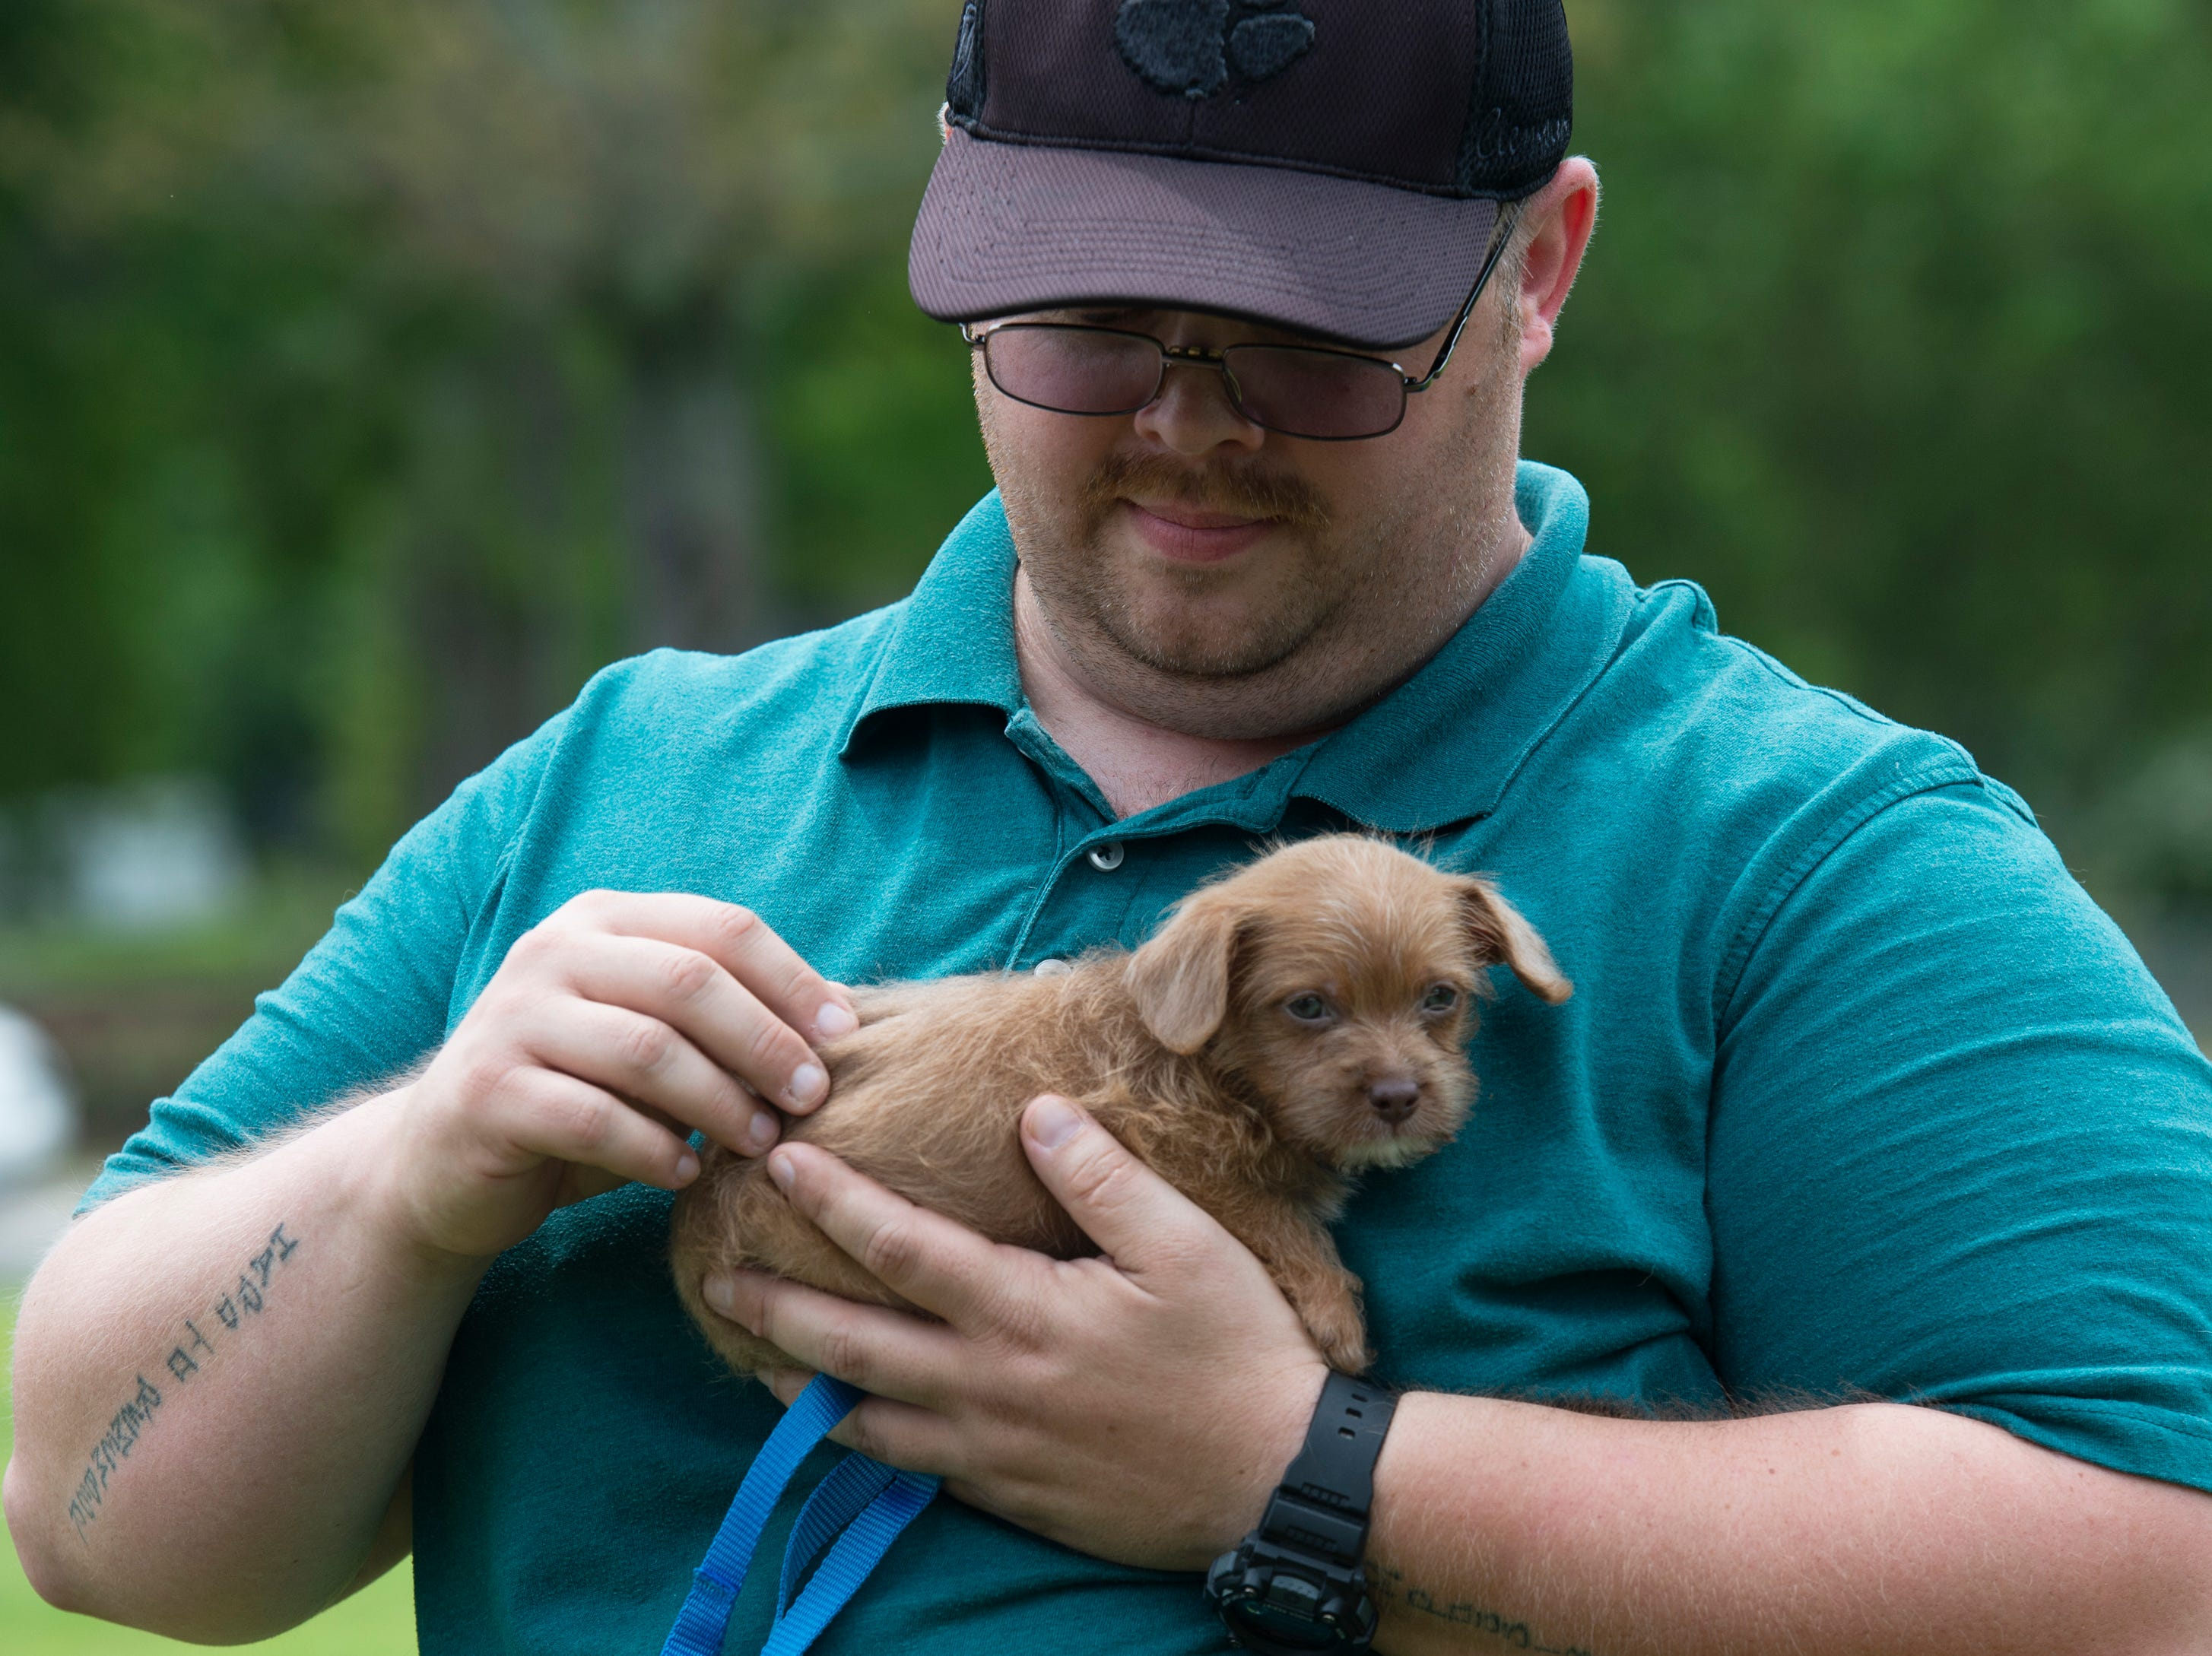 Warren Lanford, of Simpsonville, carries his puppy, Peanut, during Paws for a Cause in Simpsonville City Park Saturday, April 13, 2019.